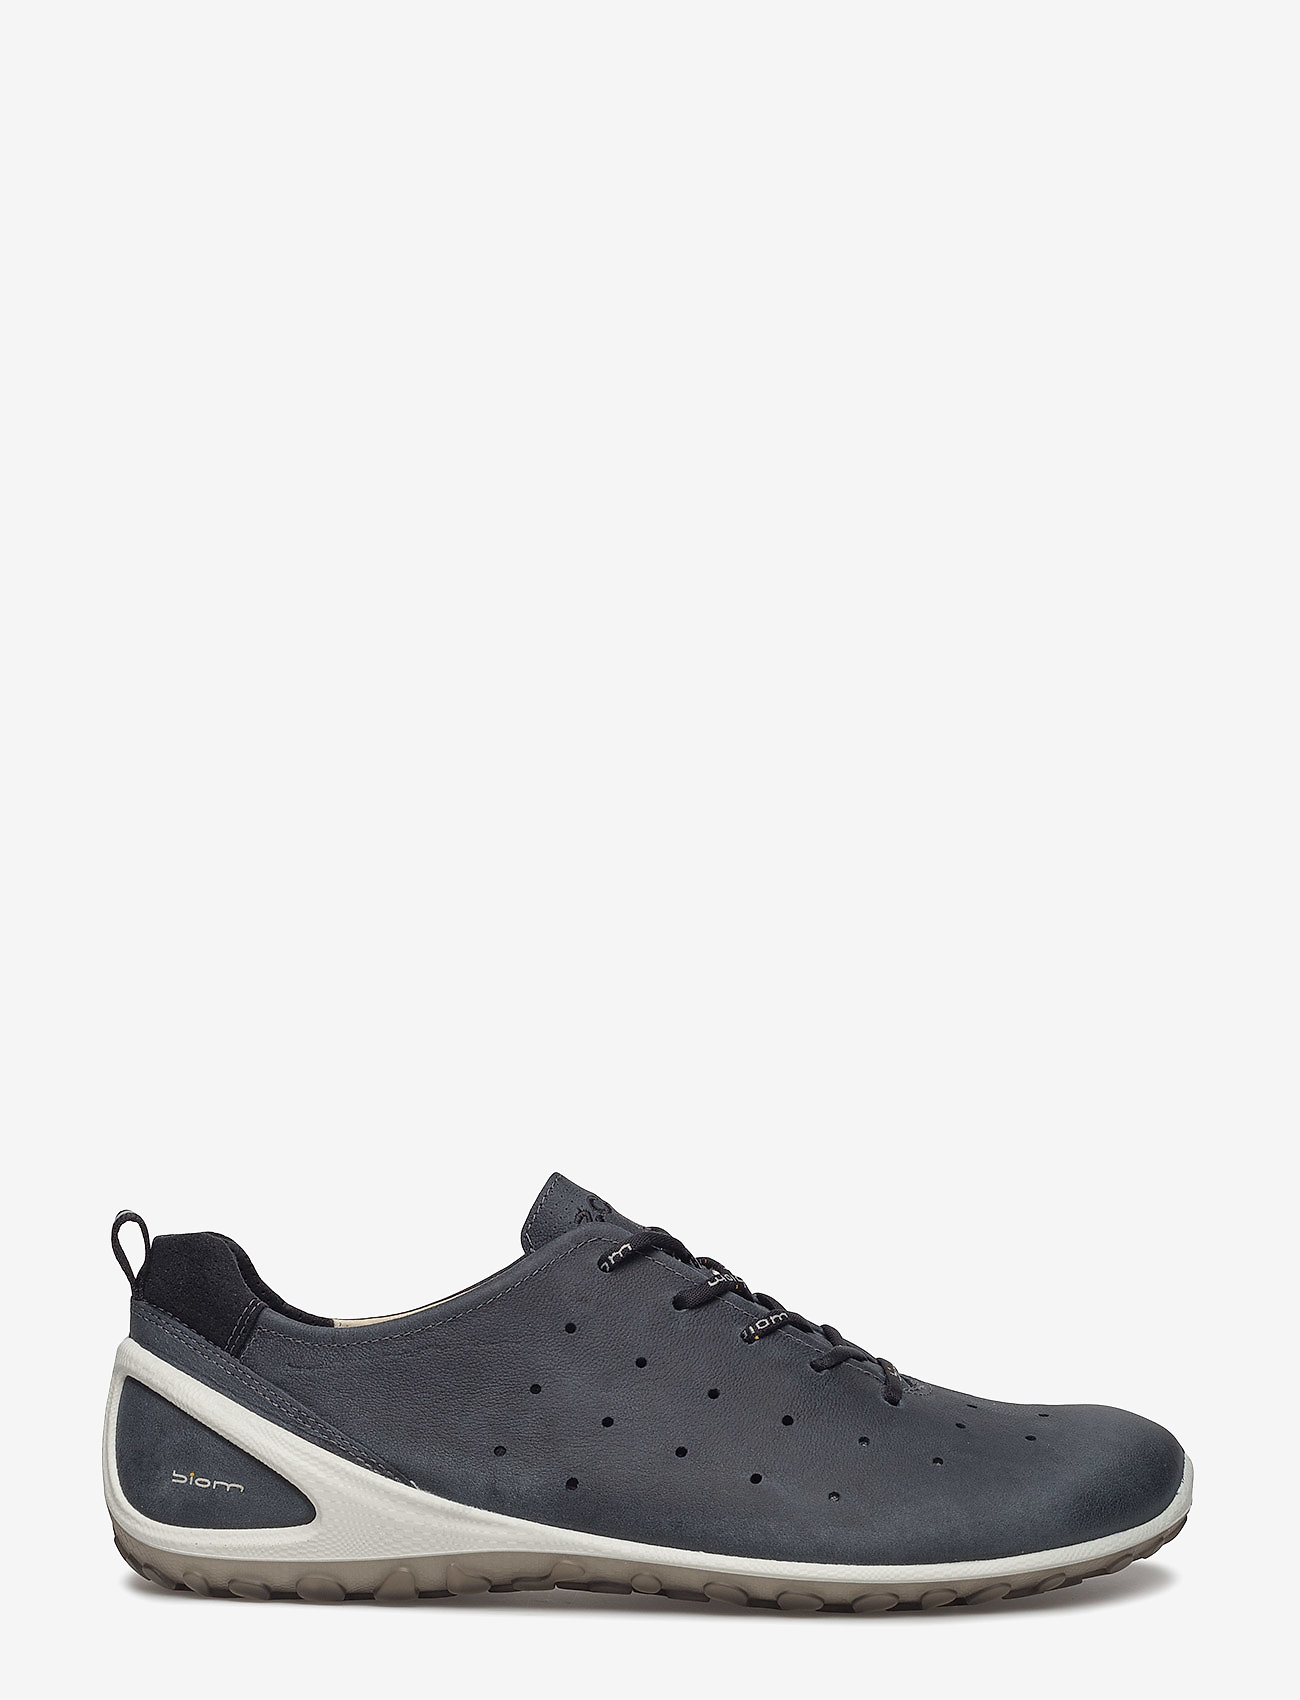 ECCO - BIOM LITE MENS - low tops - ombre/ombre - 1